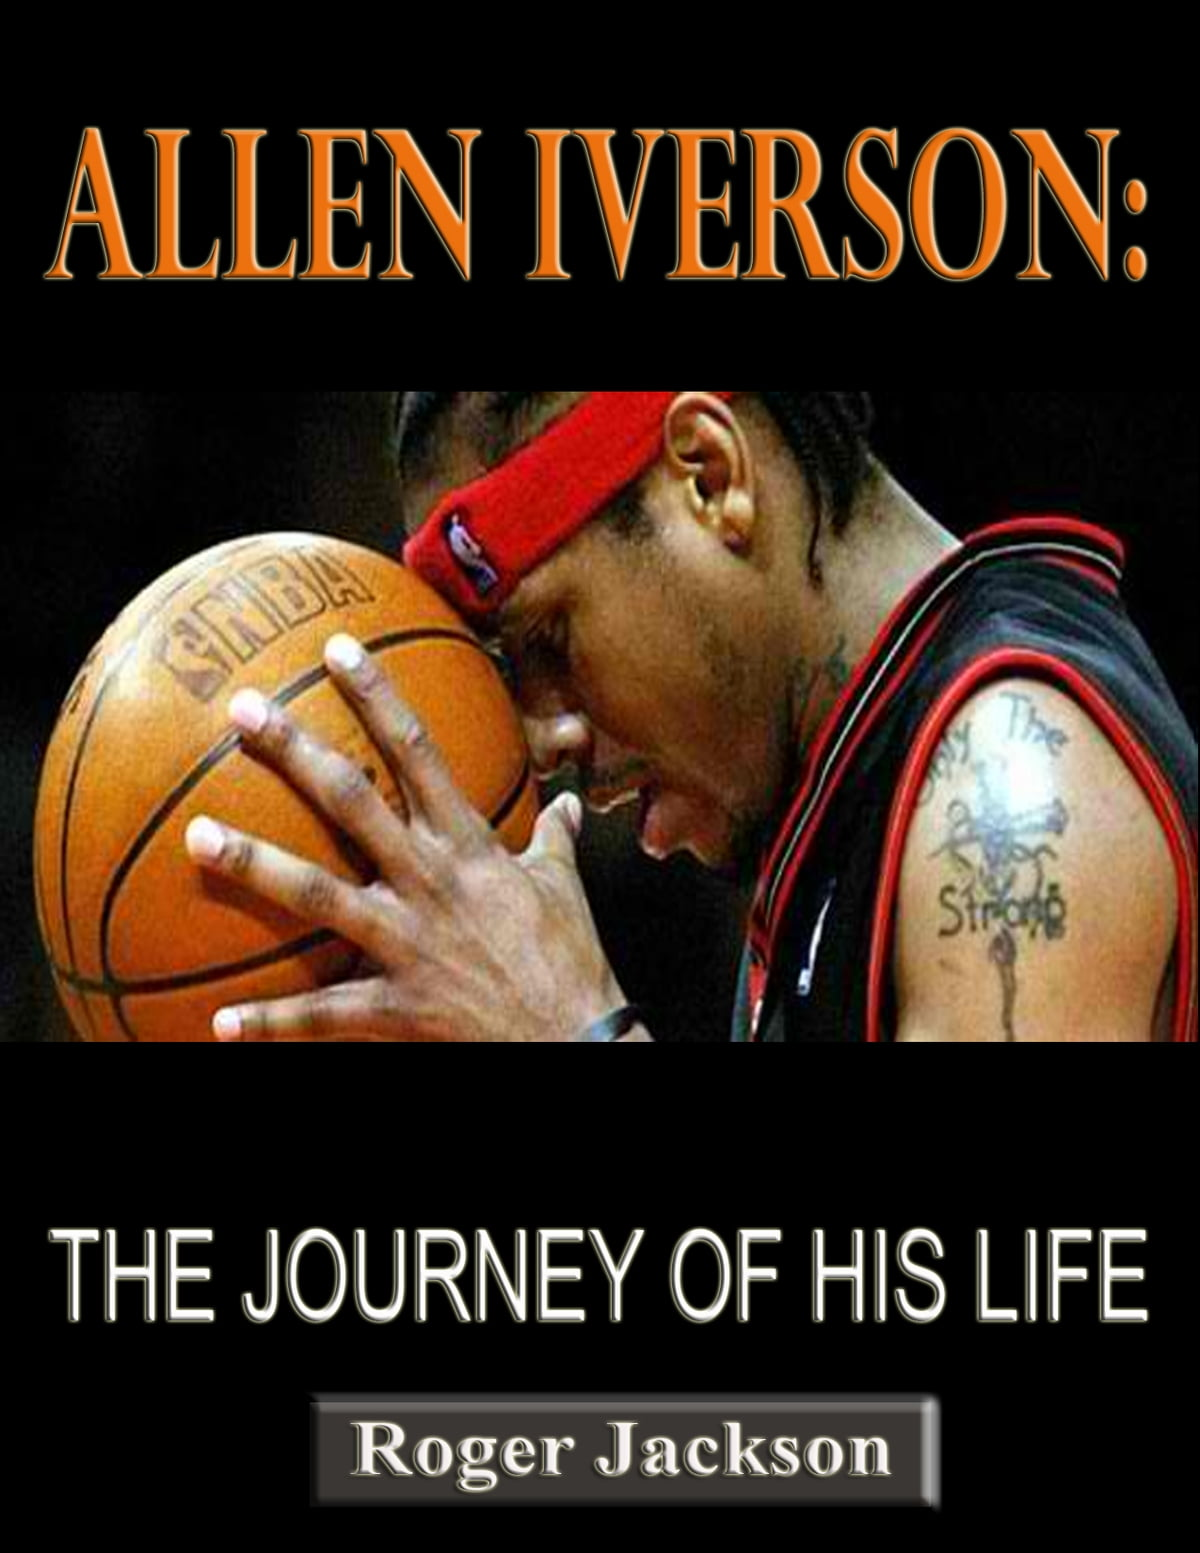 Allen iverson the journey of his life ebook by roger jackson allen iverson the journey of his life ebook by roger jackson 1230000135424 rakuten kobo fandeluxe PDF